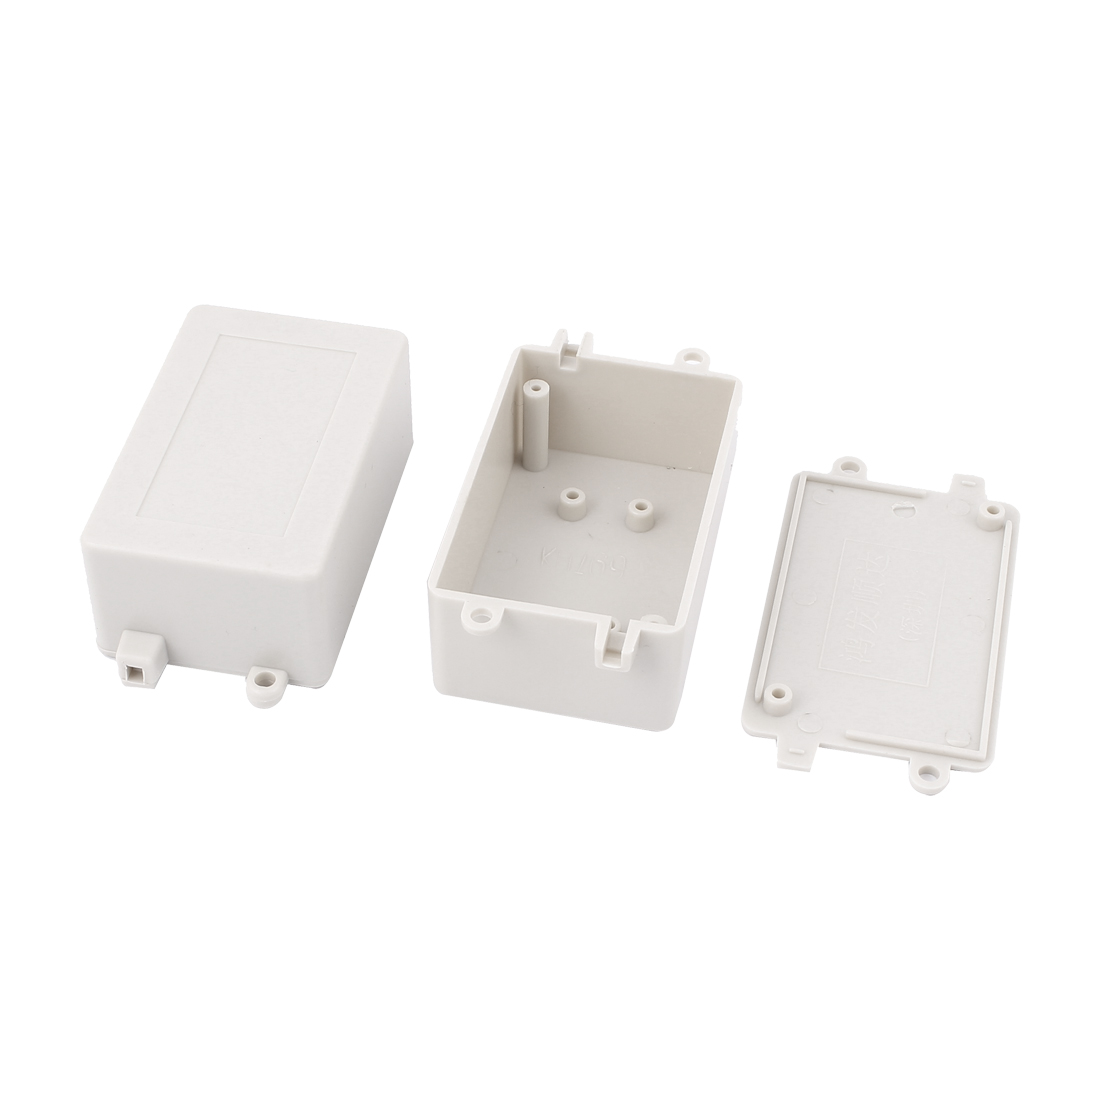 2pcs Plastic Enclosure Electronic Switch Case DIY Junction Box 70x45x30mm